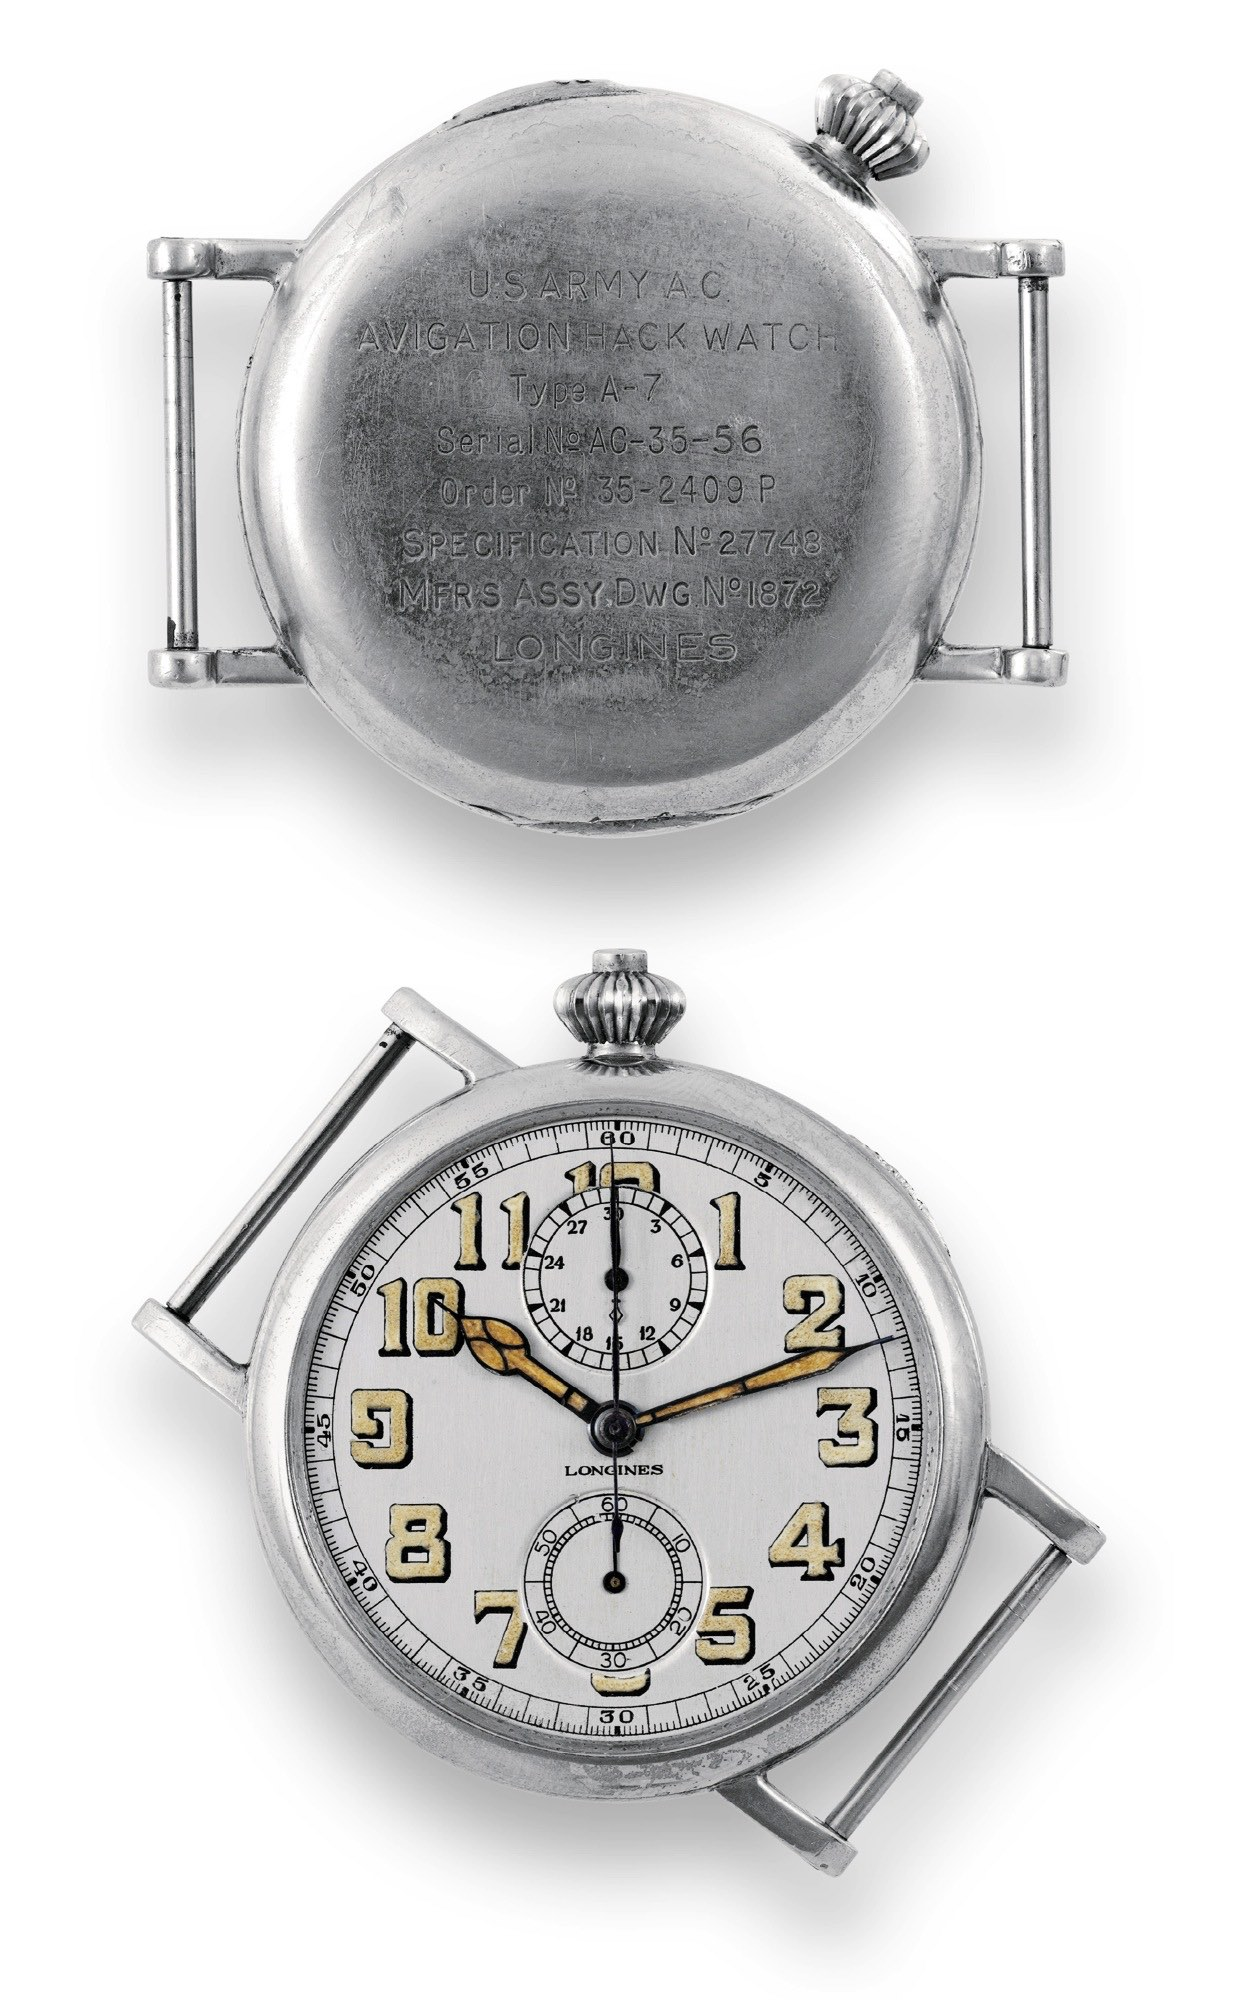 Longines Avigation Type A-7 1935 – An Eccentric Pilot's Chronograph from the Past